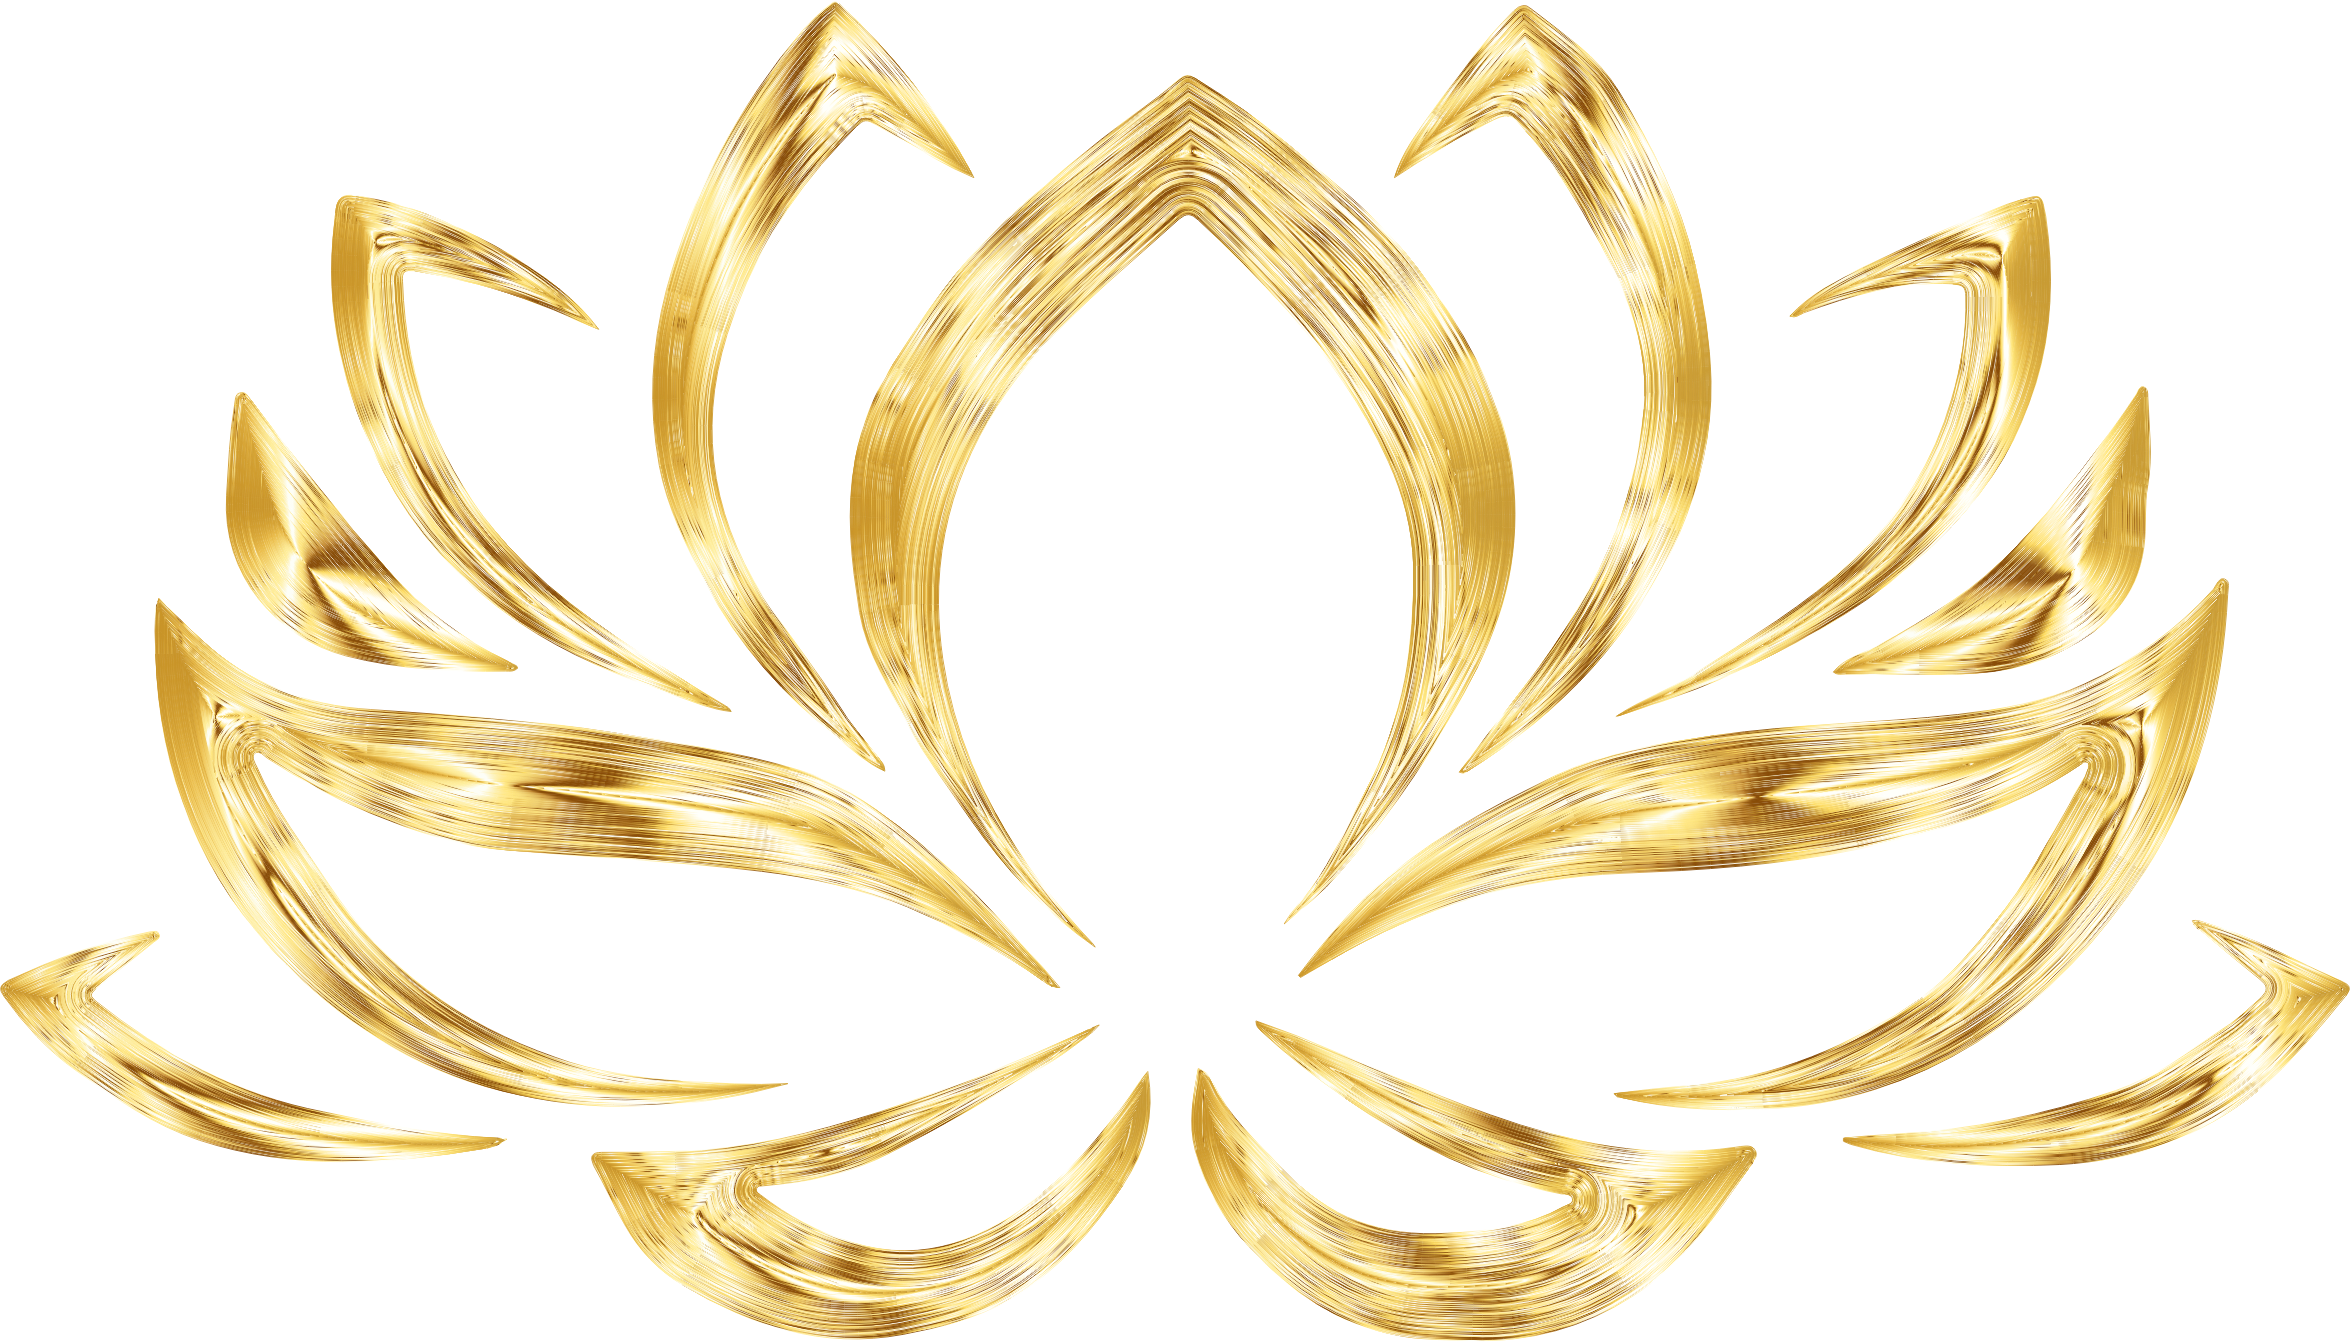 Lotus flower vector png. Aurumized no background icons